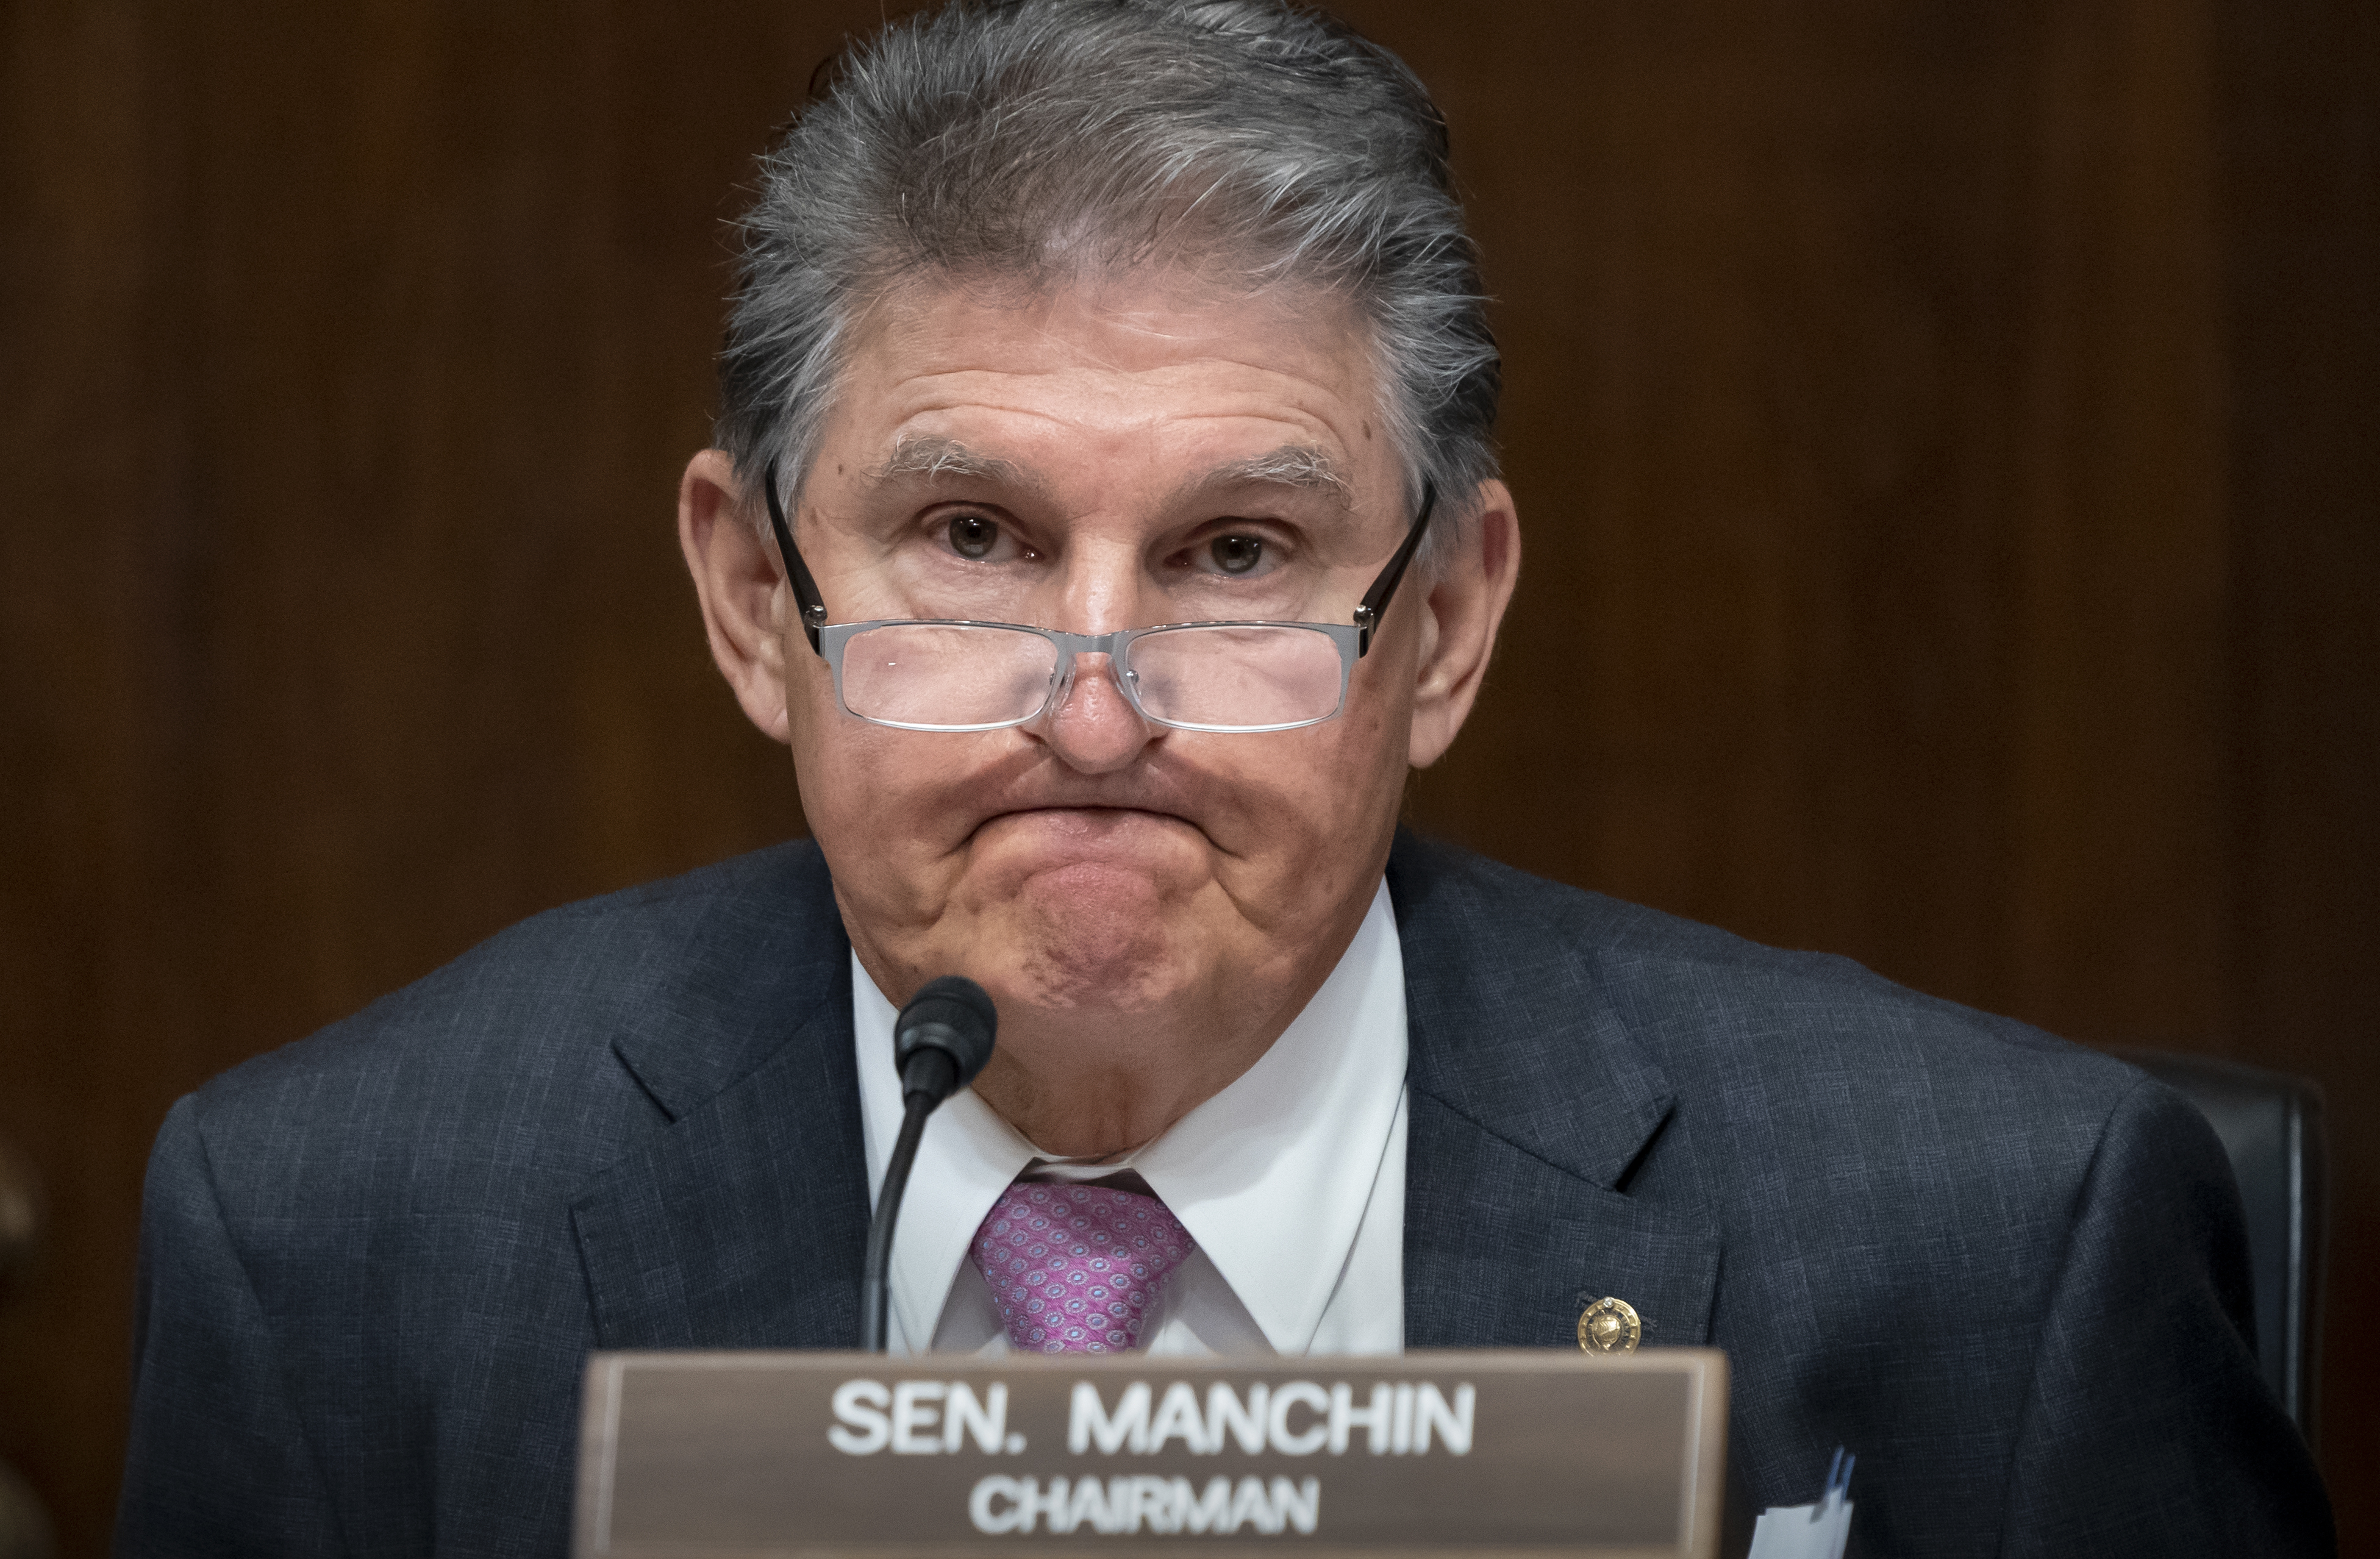 Sen. Joe Manchin, D-W.Va., chairs a hearing of the Senate Energy and Natural Resources Committee.